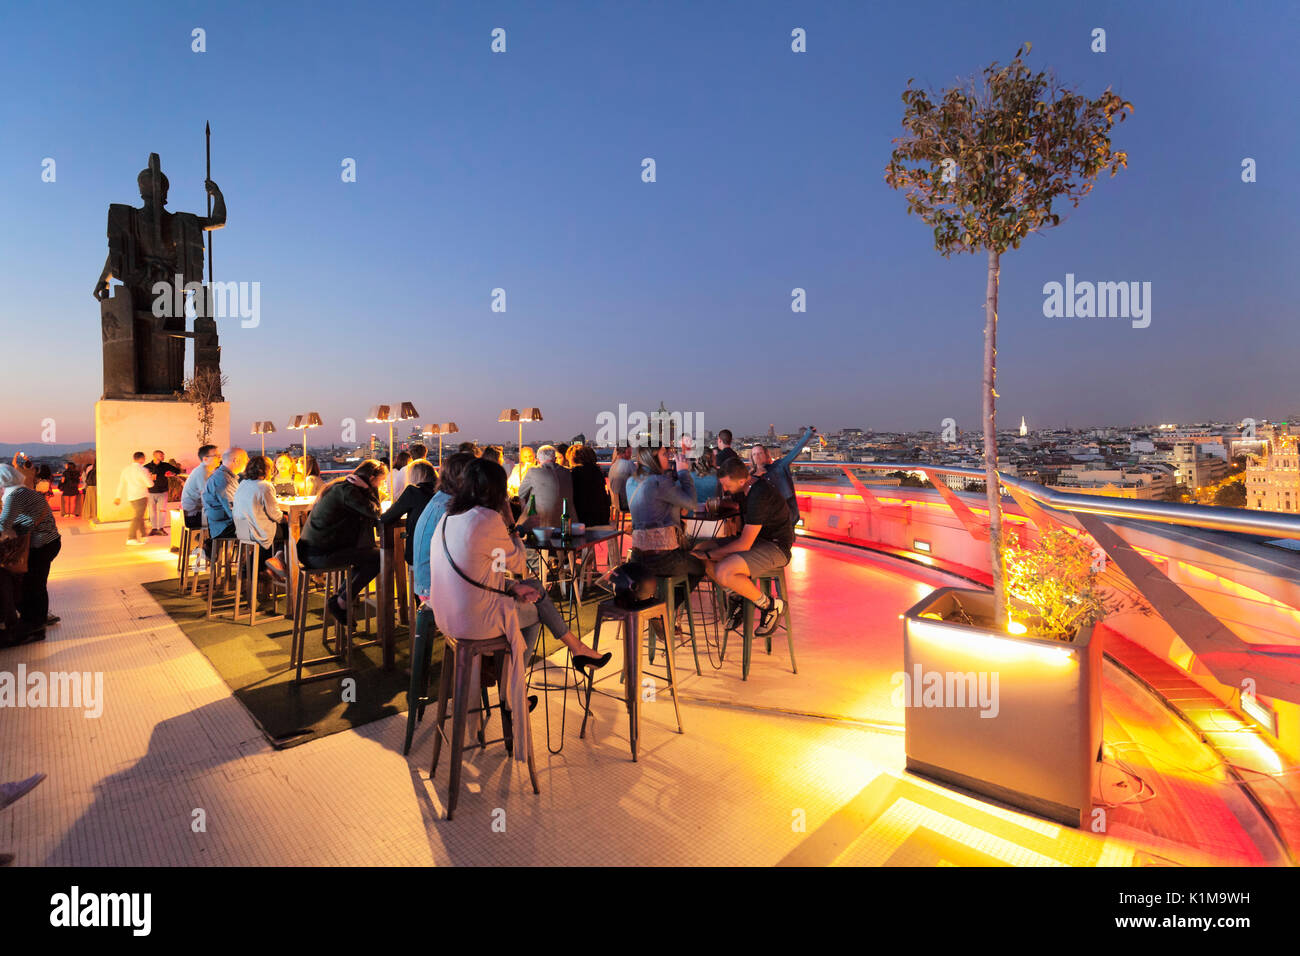 Rooftop bar La Azotea del Circulo, Circulo de Bellas Artes, Madrid, Spain - Stock Image